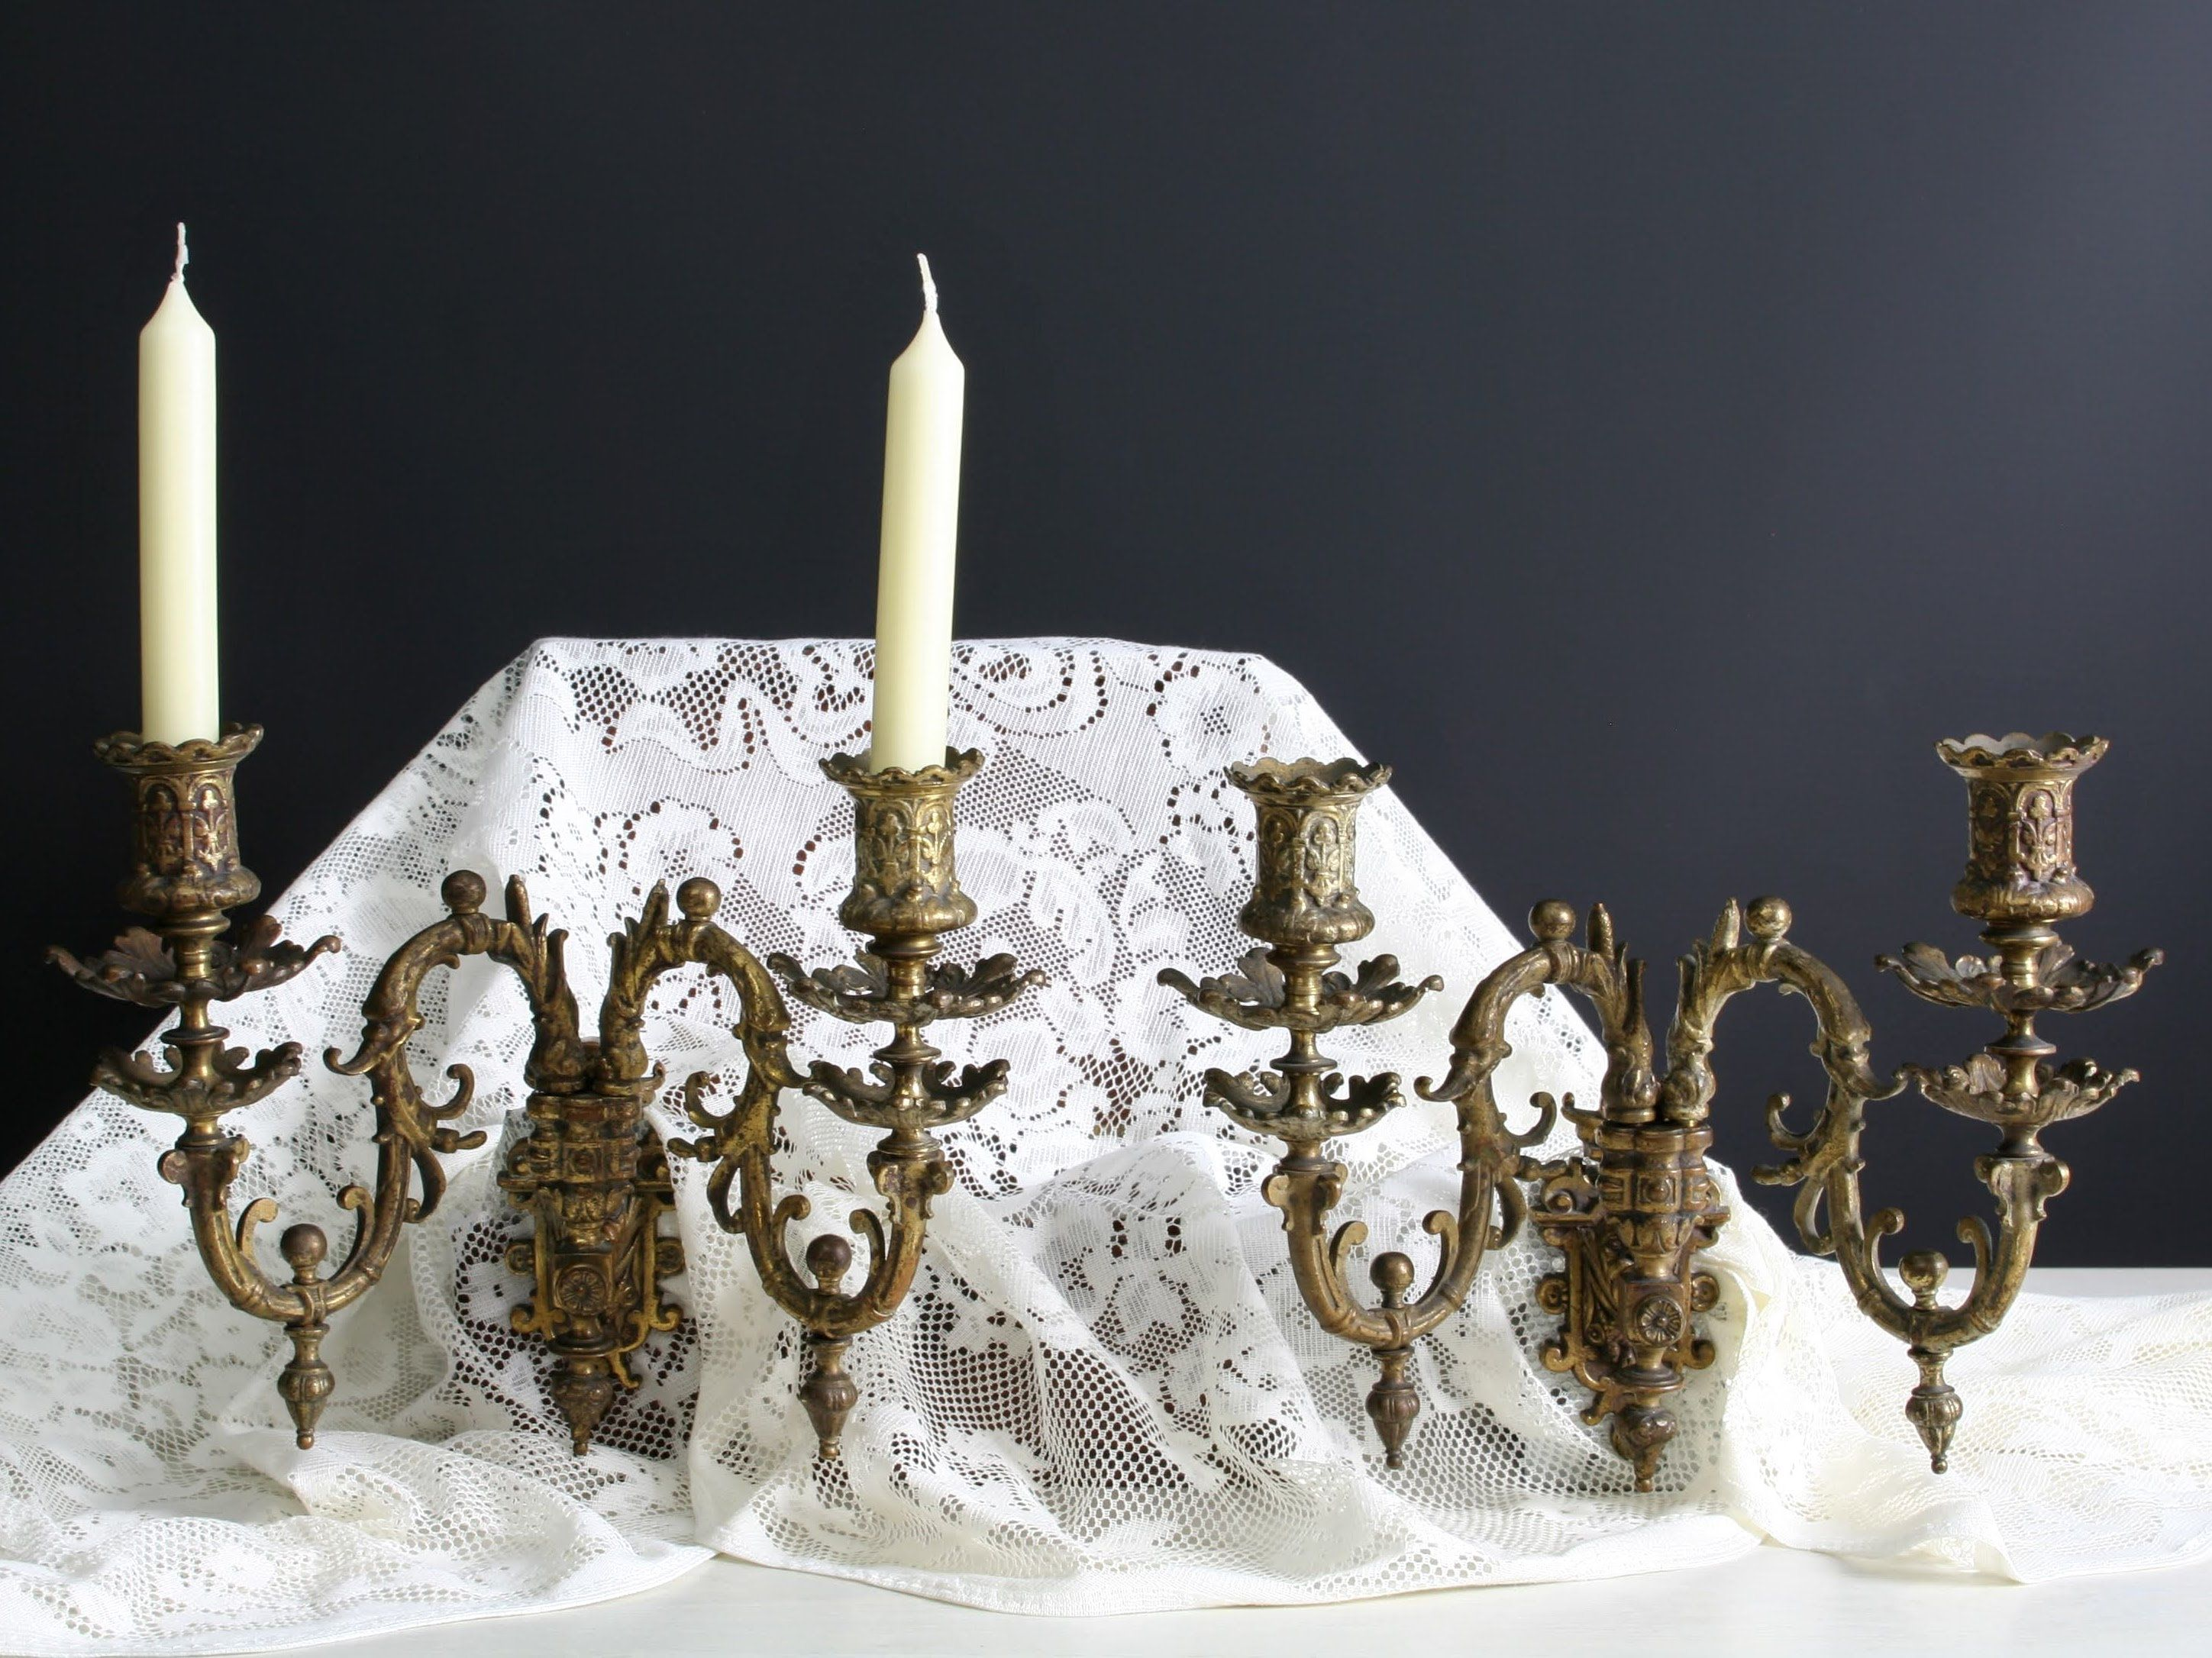 French Antique-Candle Wall Sconce-Turn Of the Century-Wall ... on Vintage Wall Sconce Candle Holder Decorating Ideas id=80074